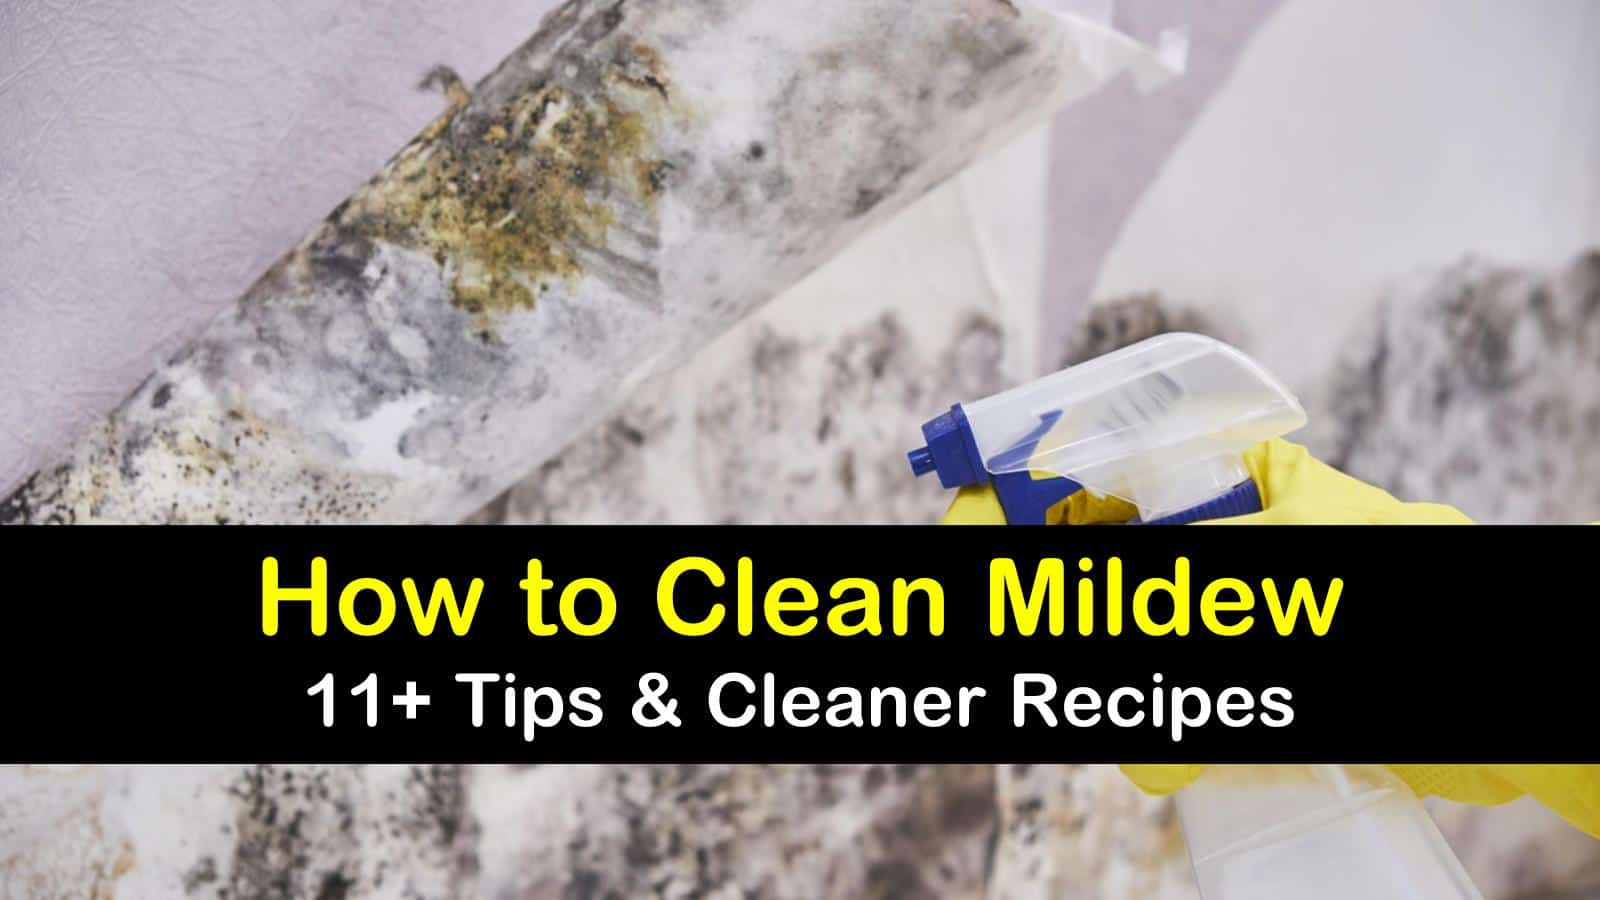 how to clean mildew titleimg1